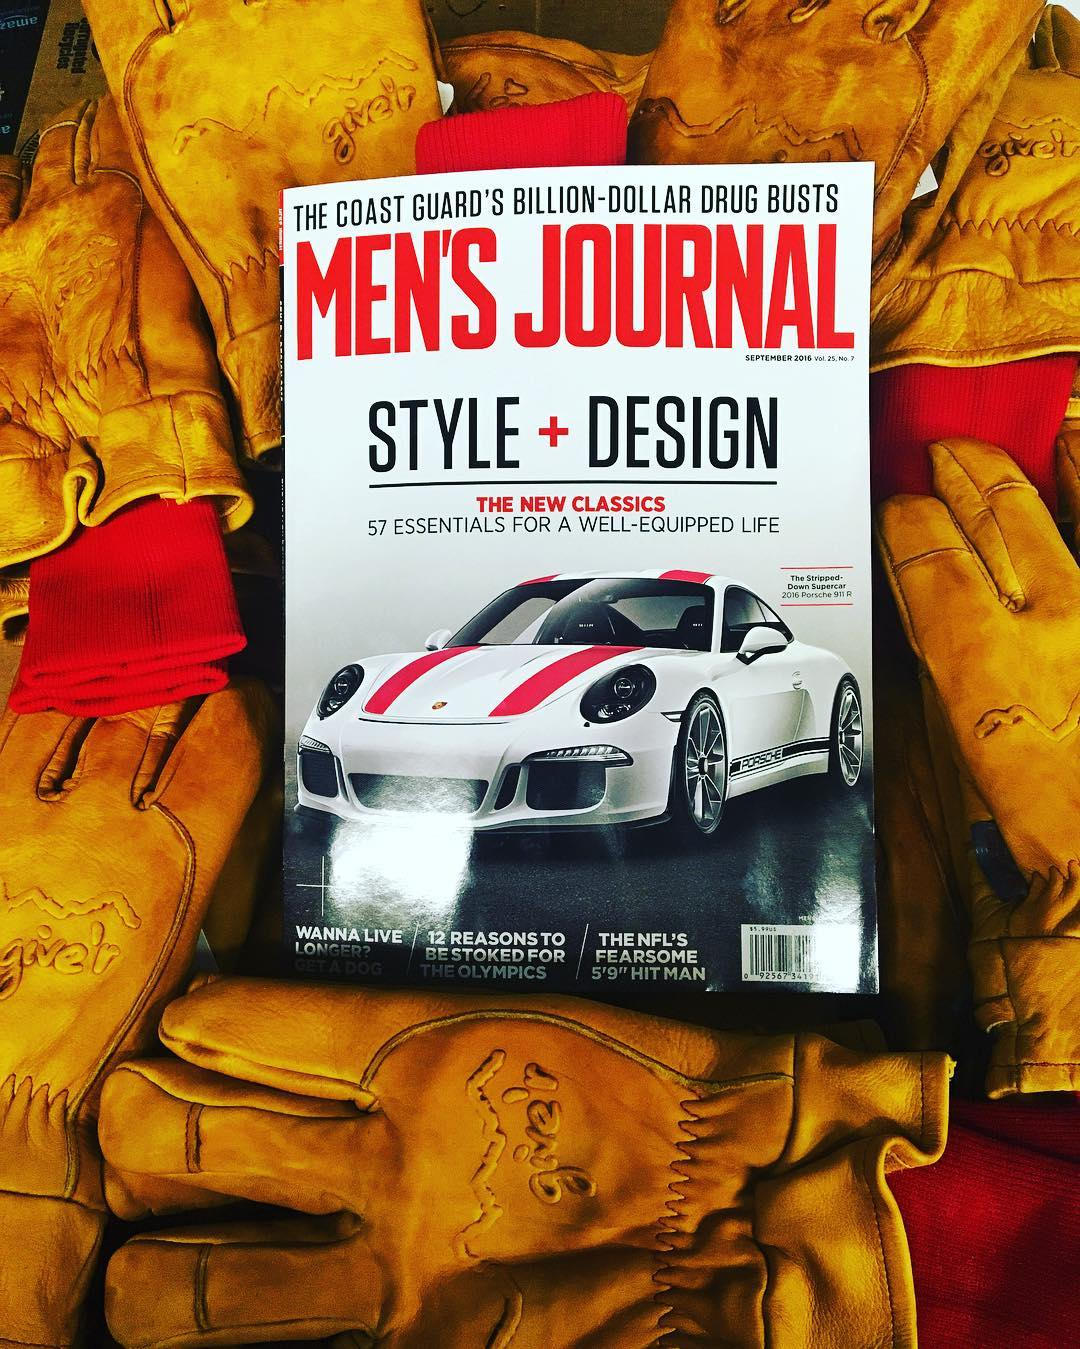 Check out the newest edition of @mensjournal !! So stoked to be part of this seasons Must Have Products!!! 4-Season Give'r Gloves. #gloves4life #giverjh